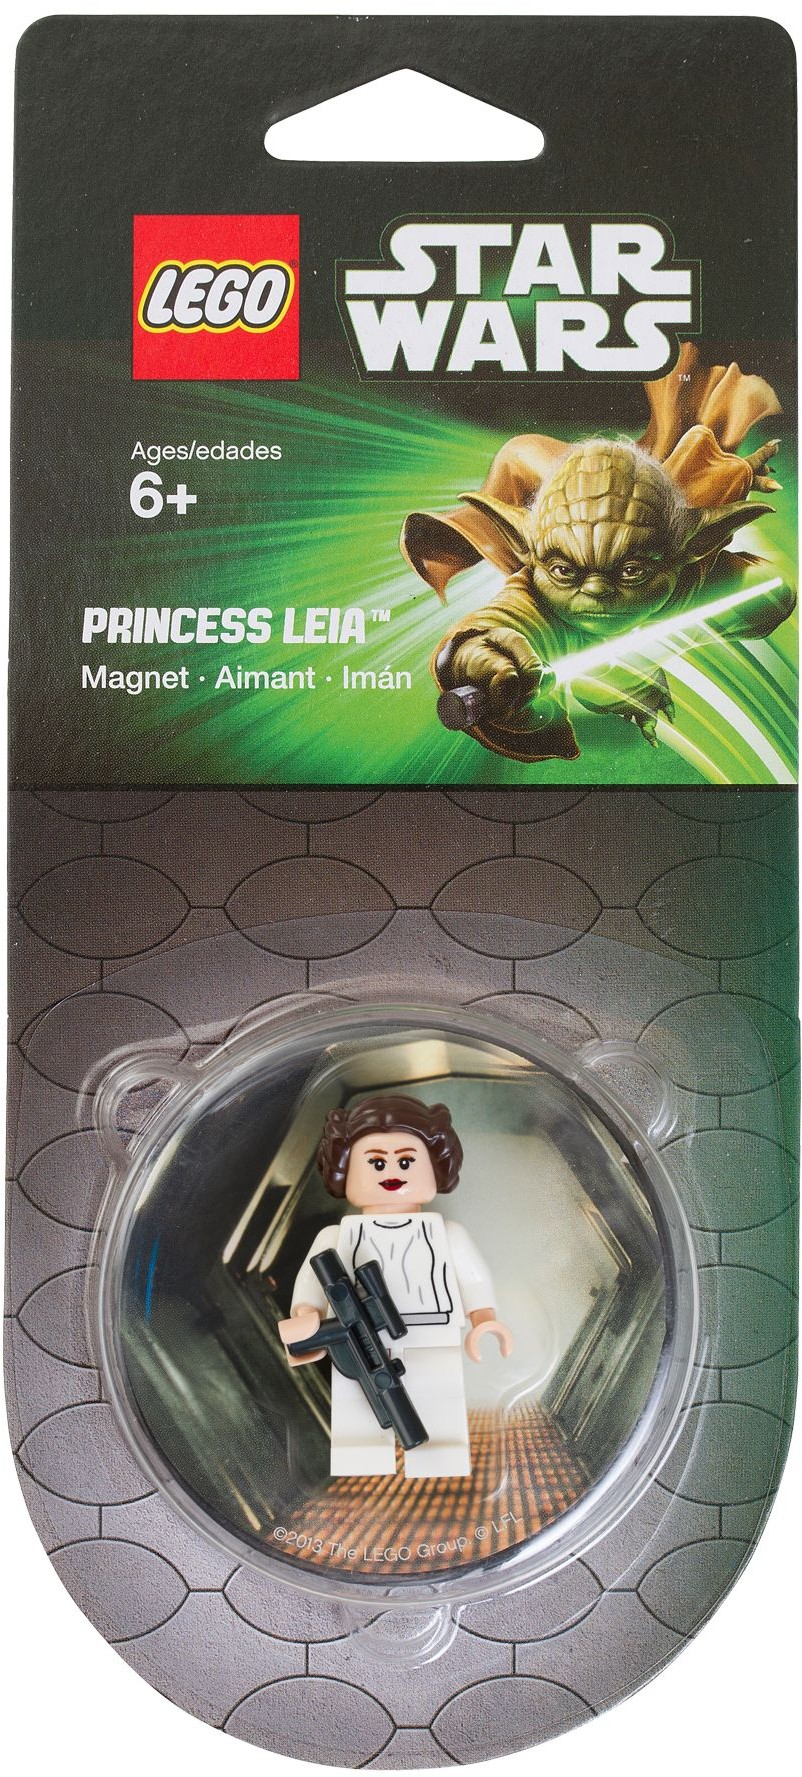 Lego Stars Wars 850637 Princess Leia